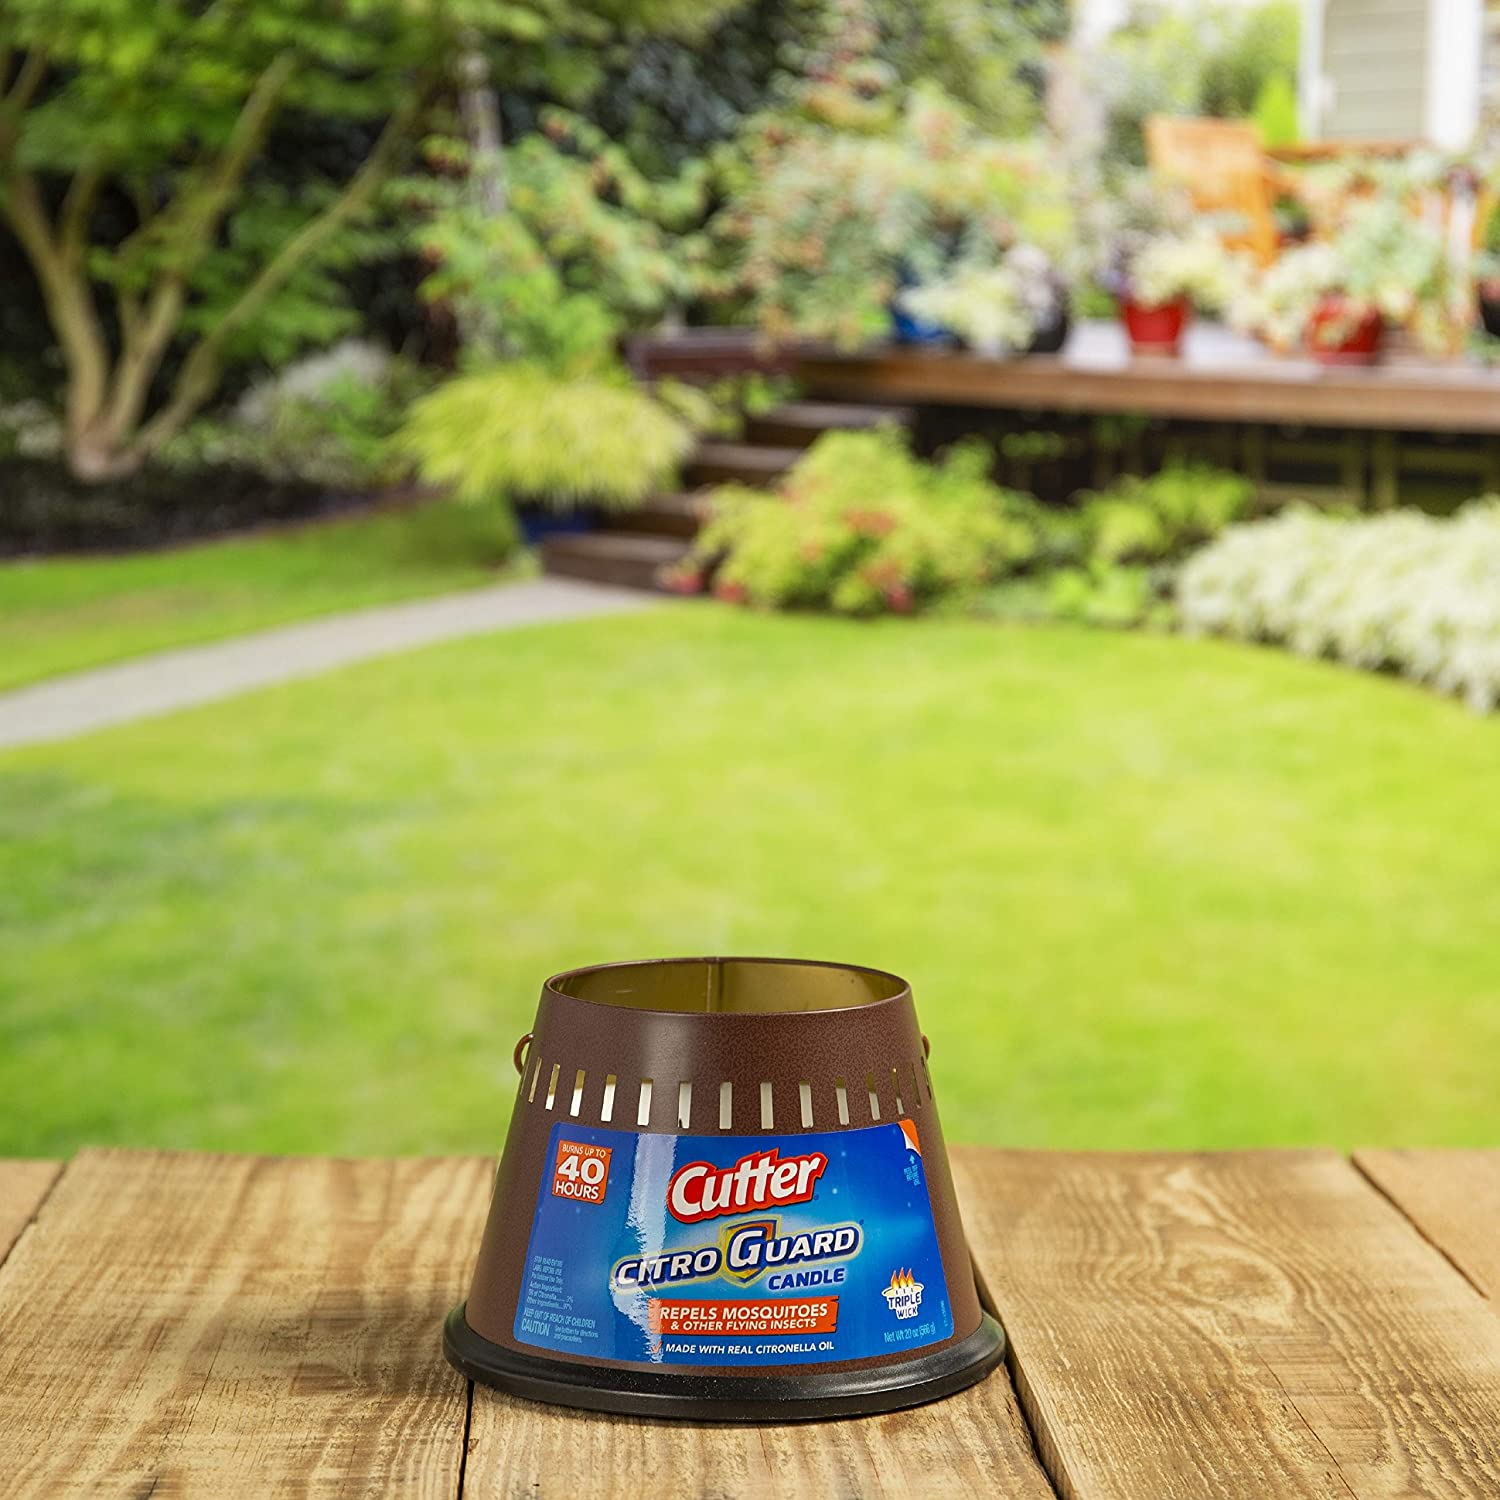 Best Citronella Candle at Amazon: Cutter 95784 Citronella Candle